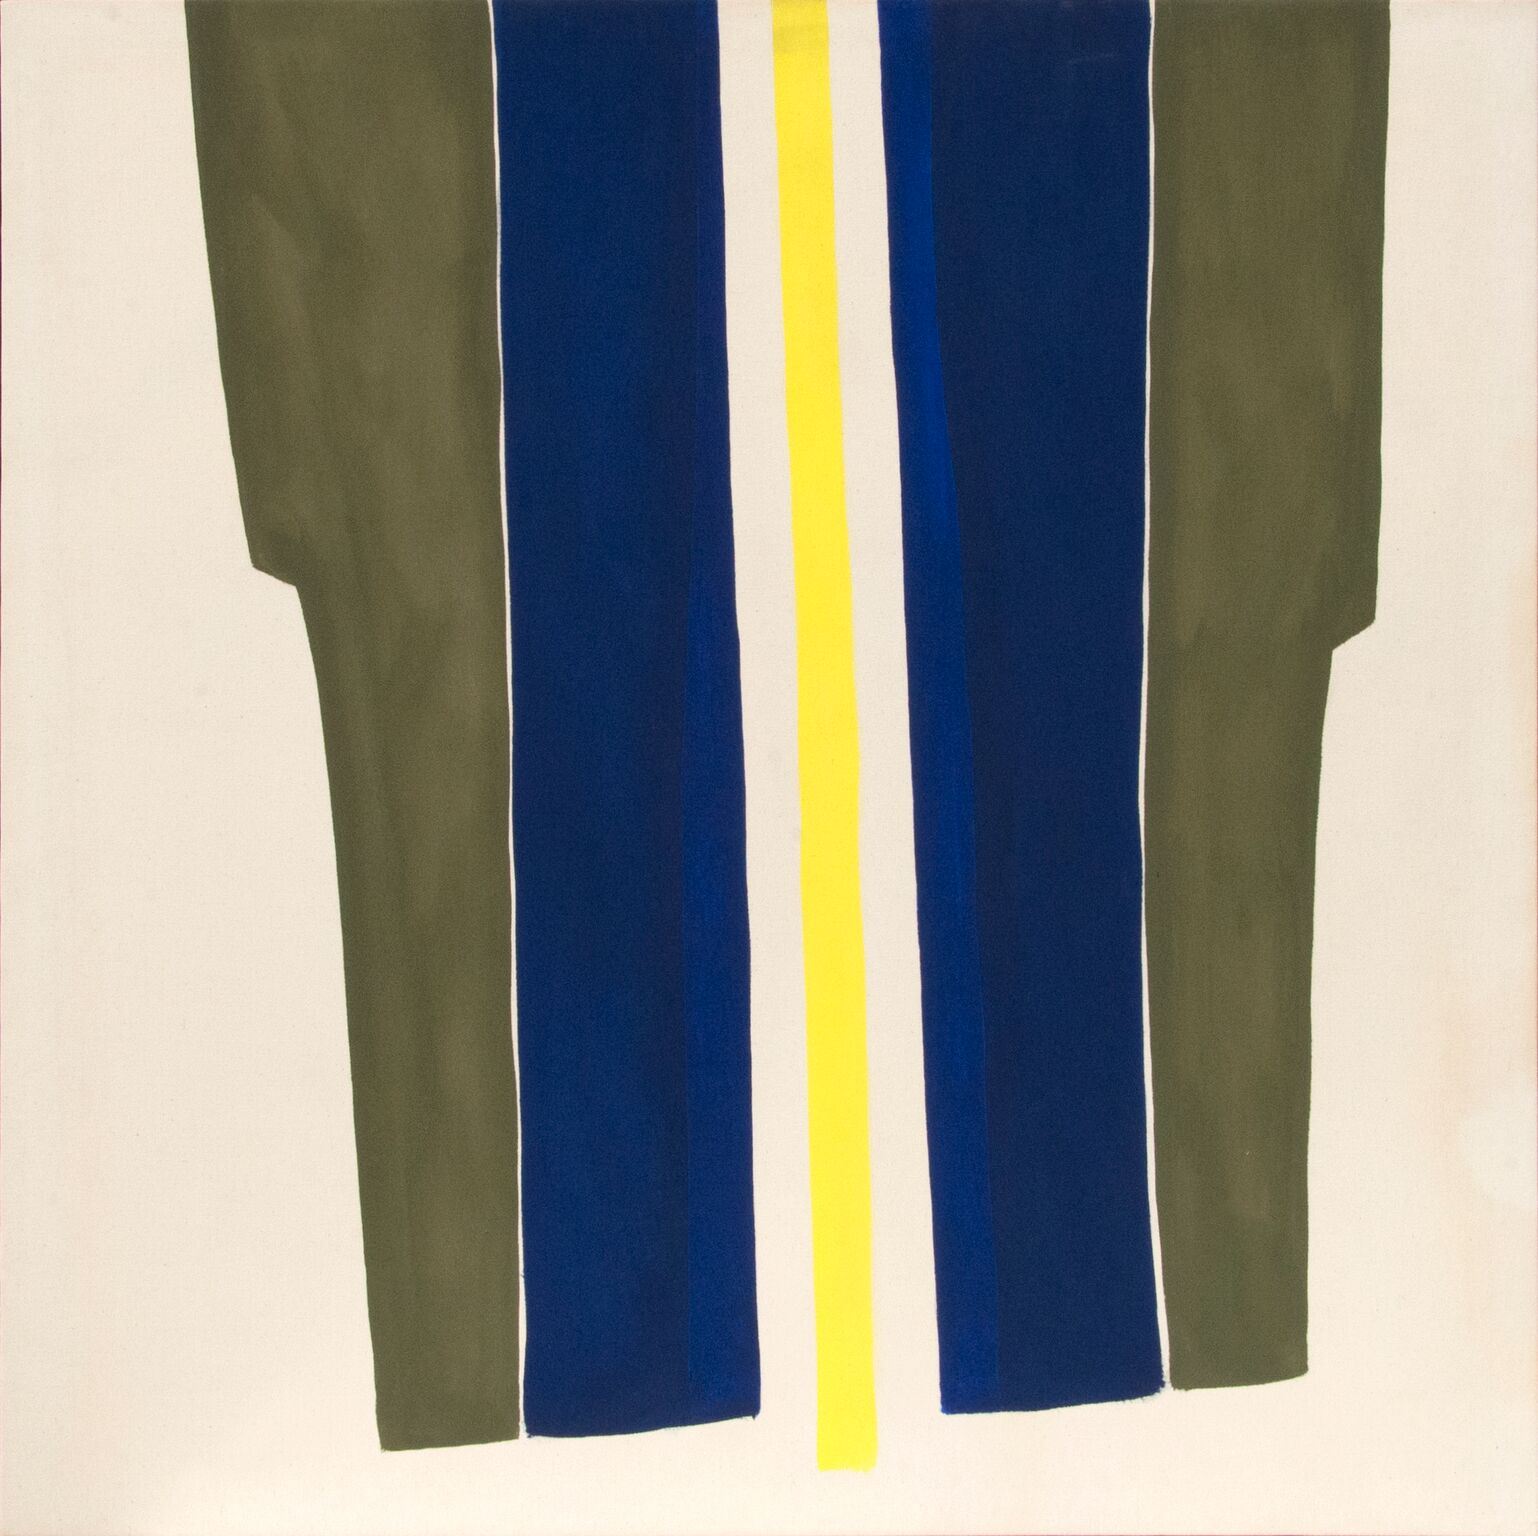 Clinton Hill  Untitled , c. 1960s acrylic on canvas 49 1/2 x 49 1/2 in (125.73 x 125.73 cm)